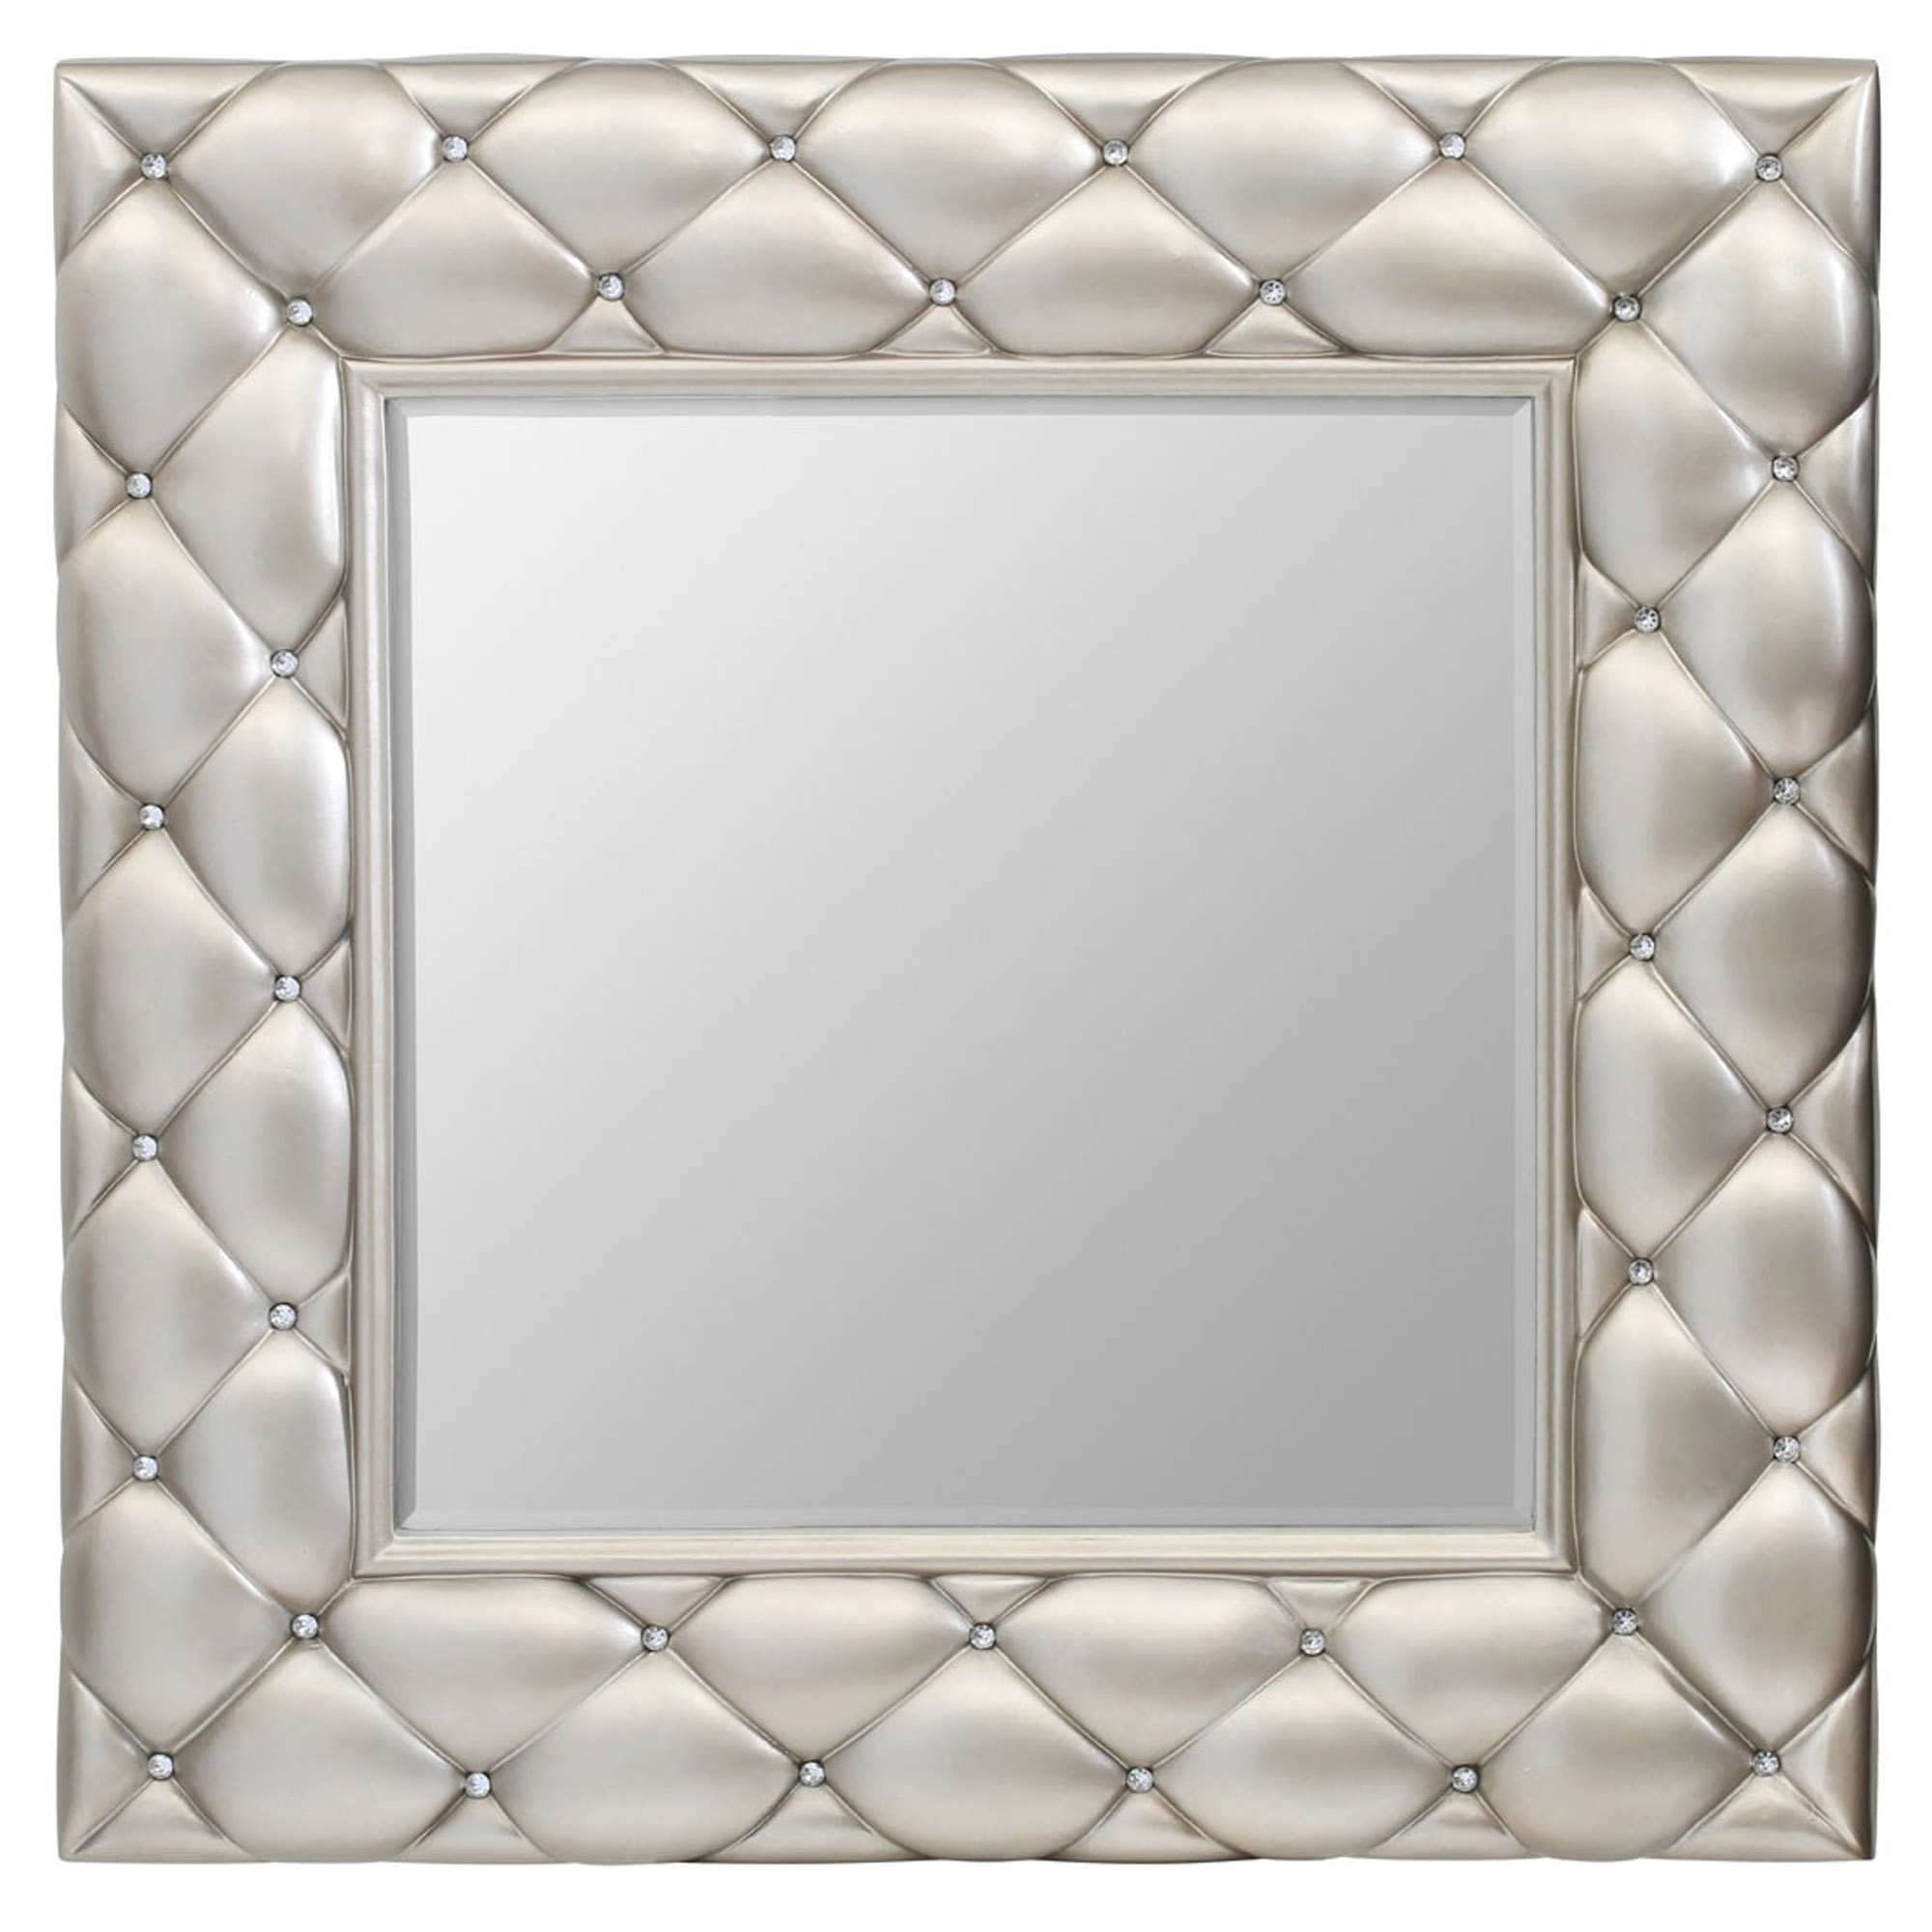 Newest Funky Wall Mirrors Pertaining To Venturi Wall Mirror (View 16 of 20)